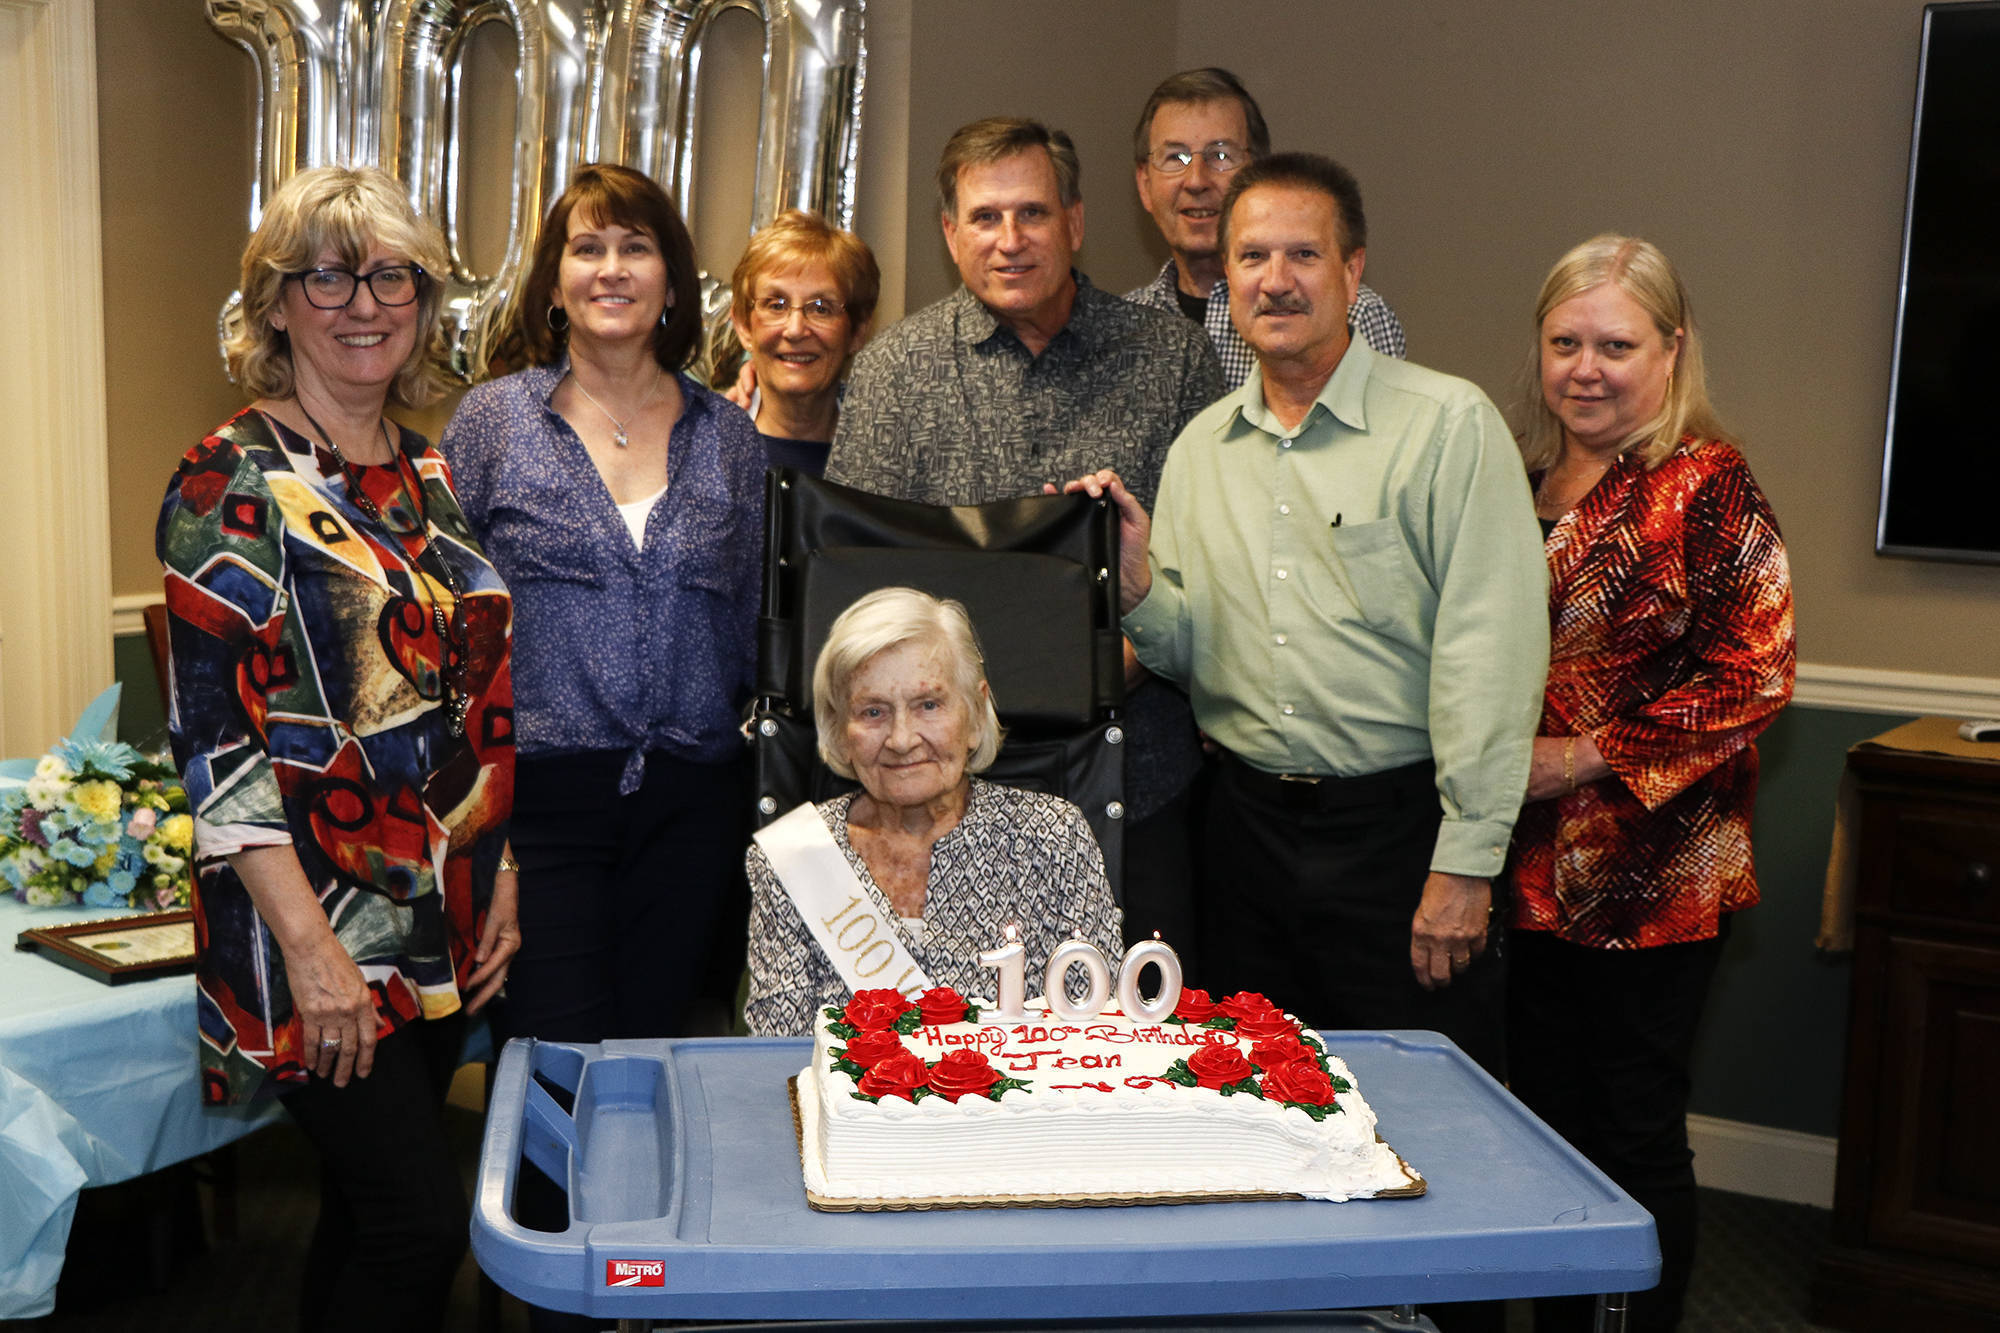 Warren Resident Turns 100, Receives Mayoral Proclamation